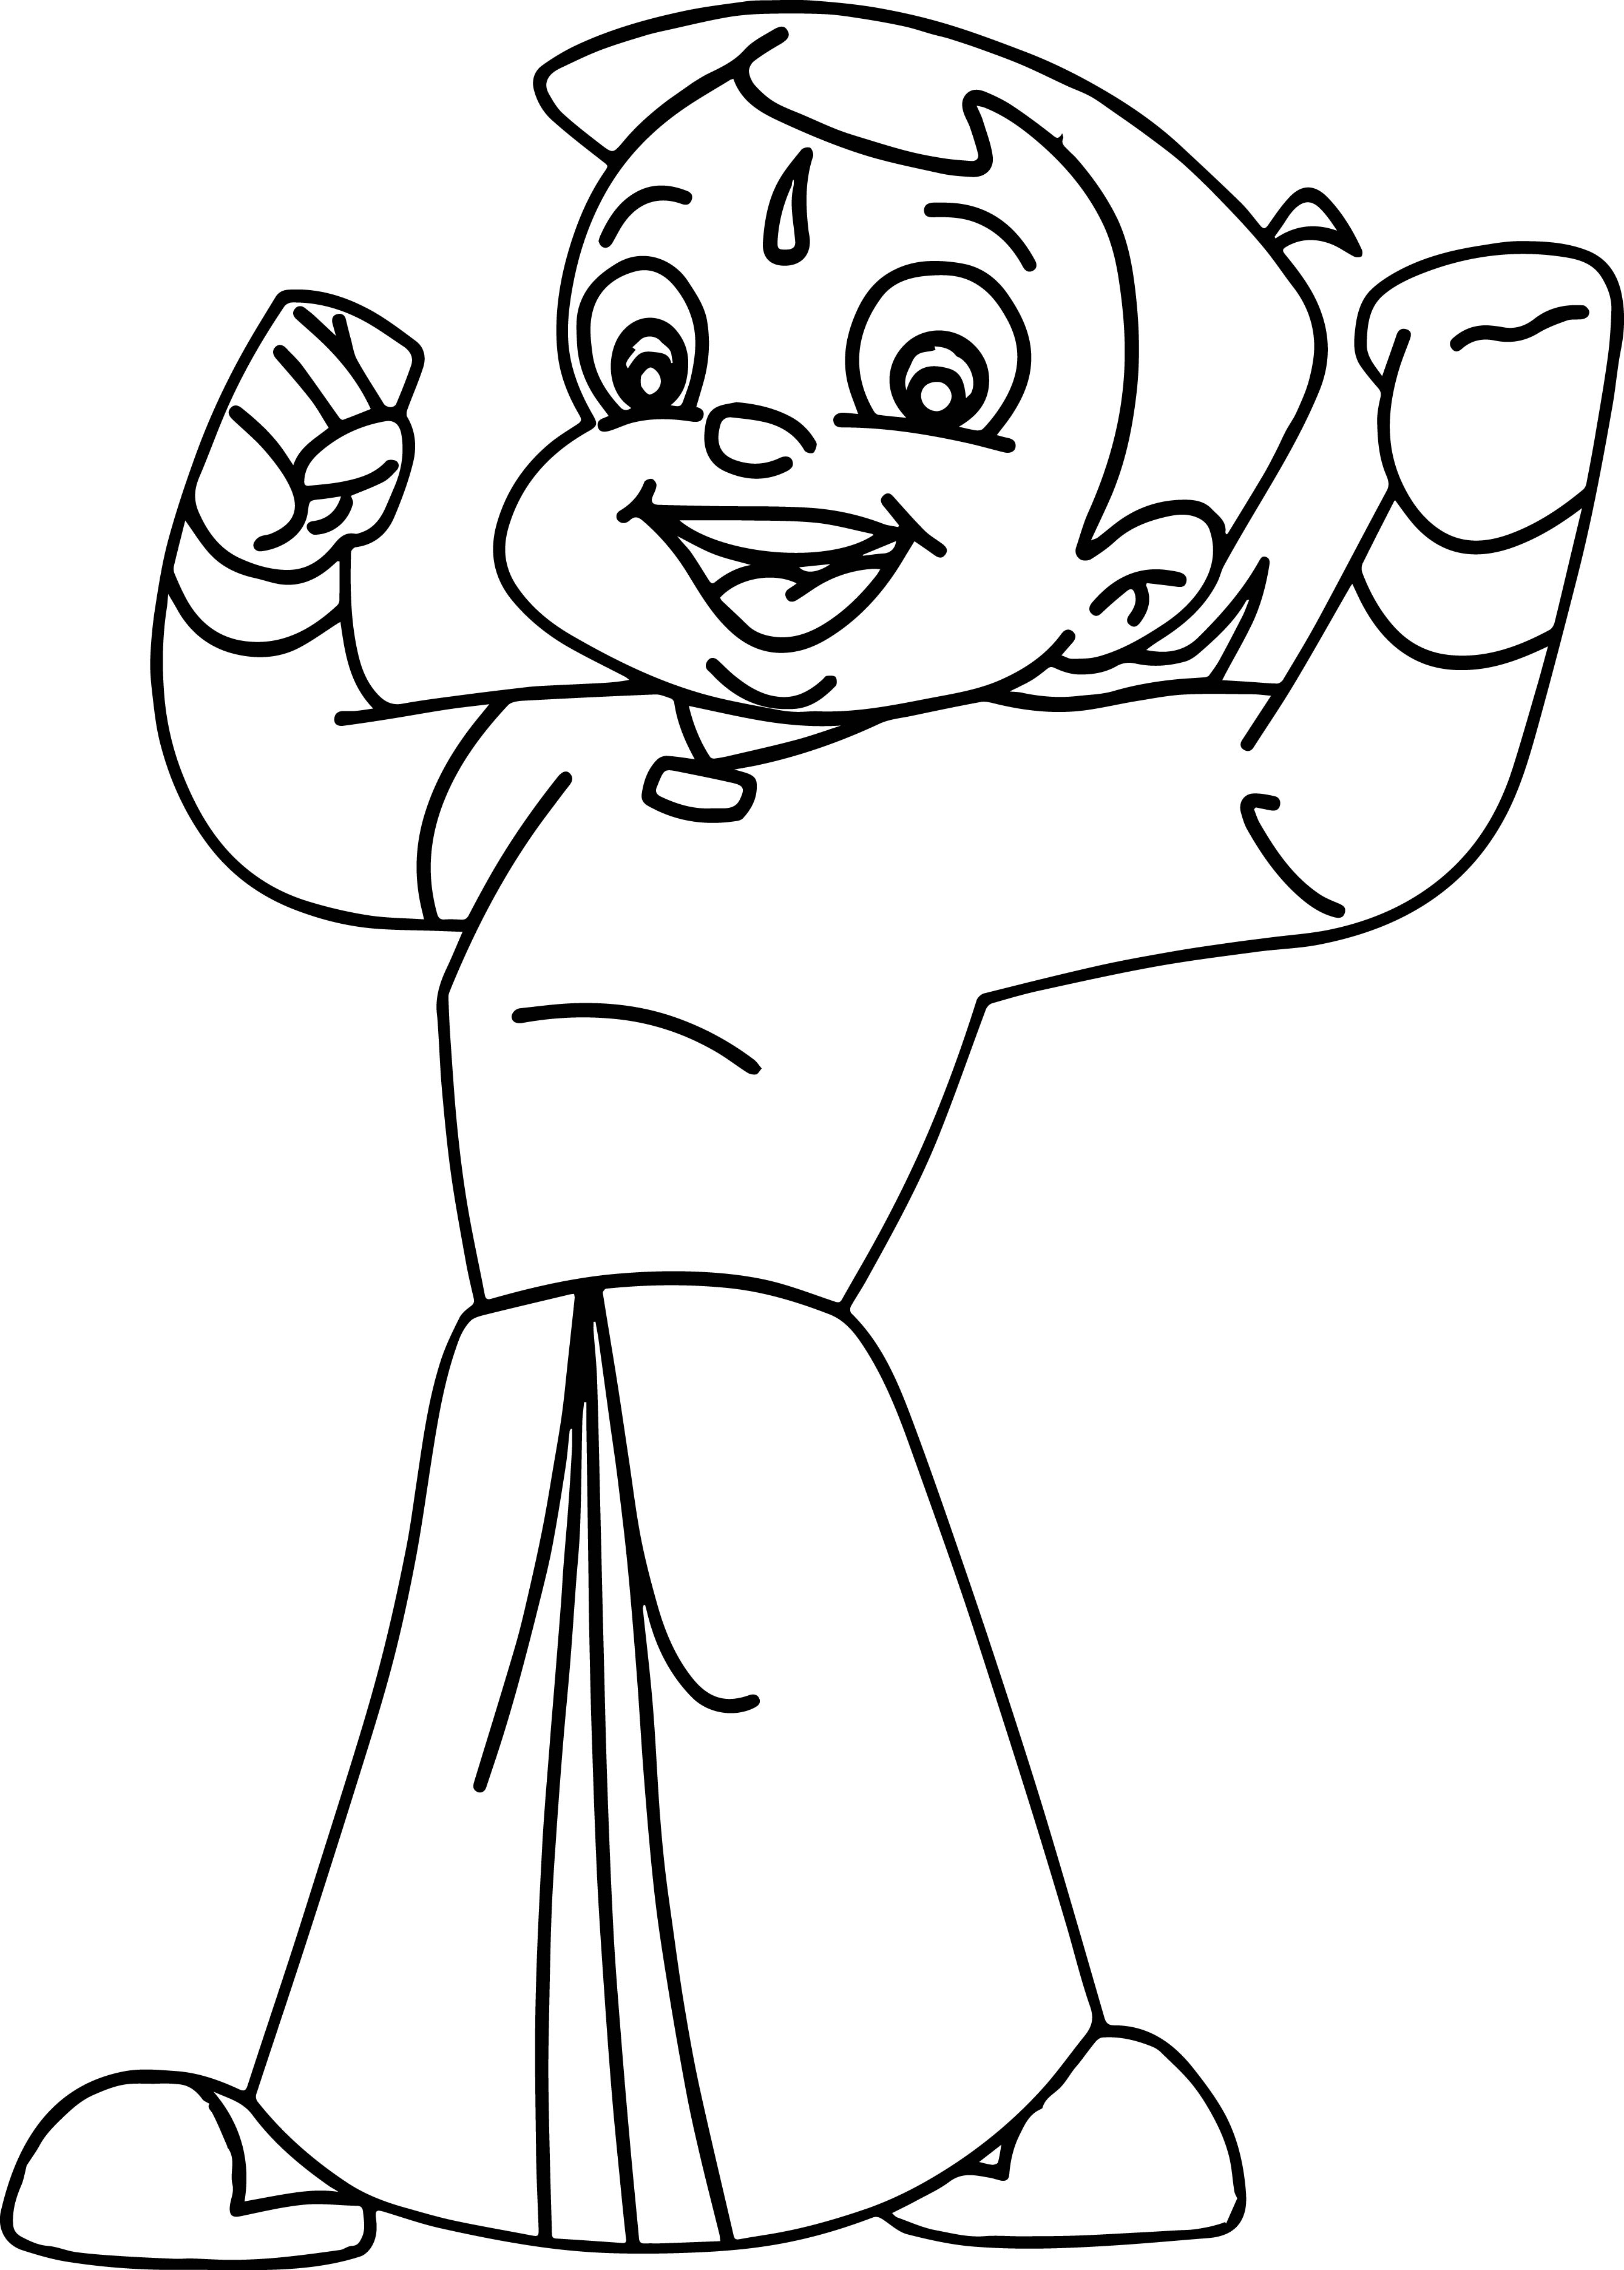 images of coloring pages - chota bheem images